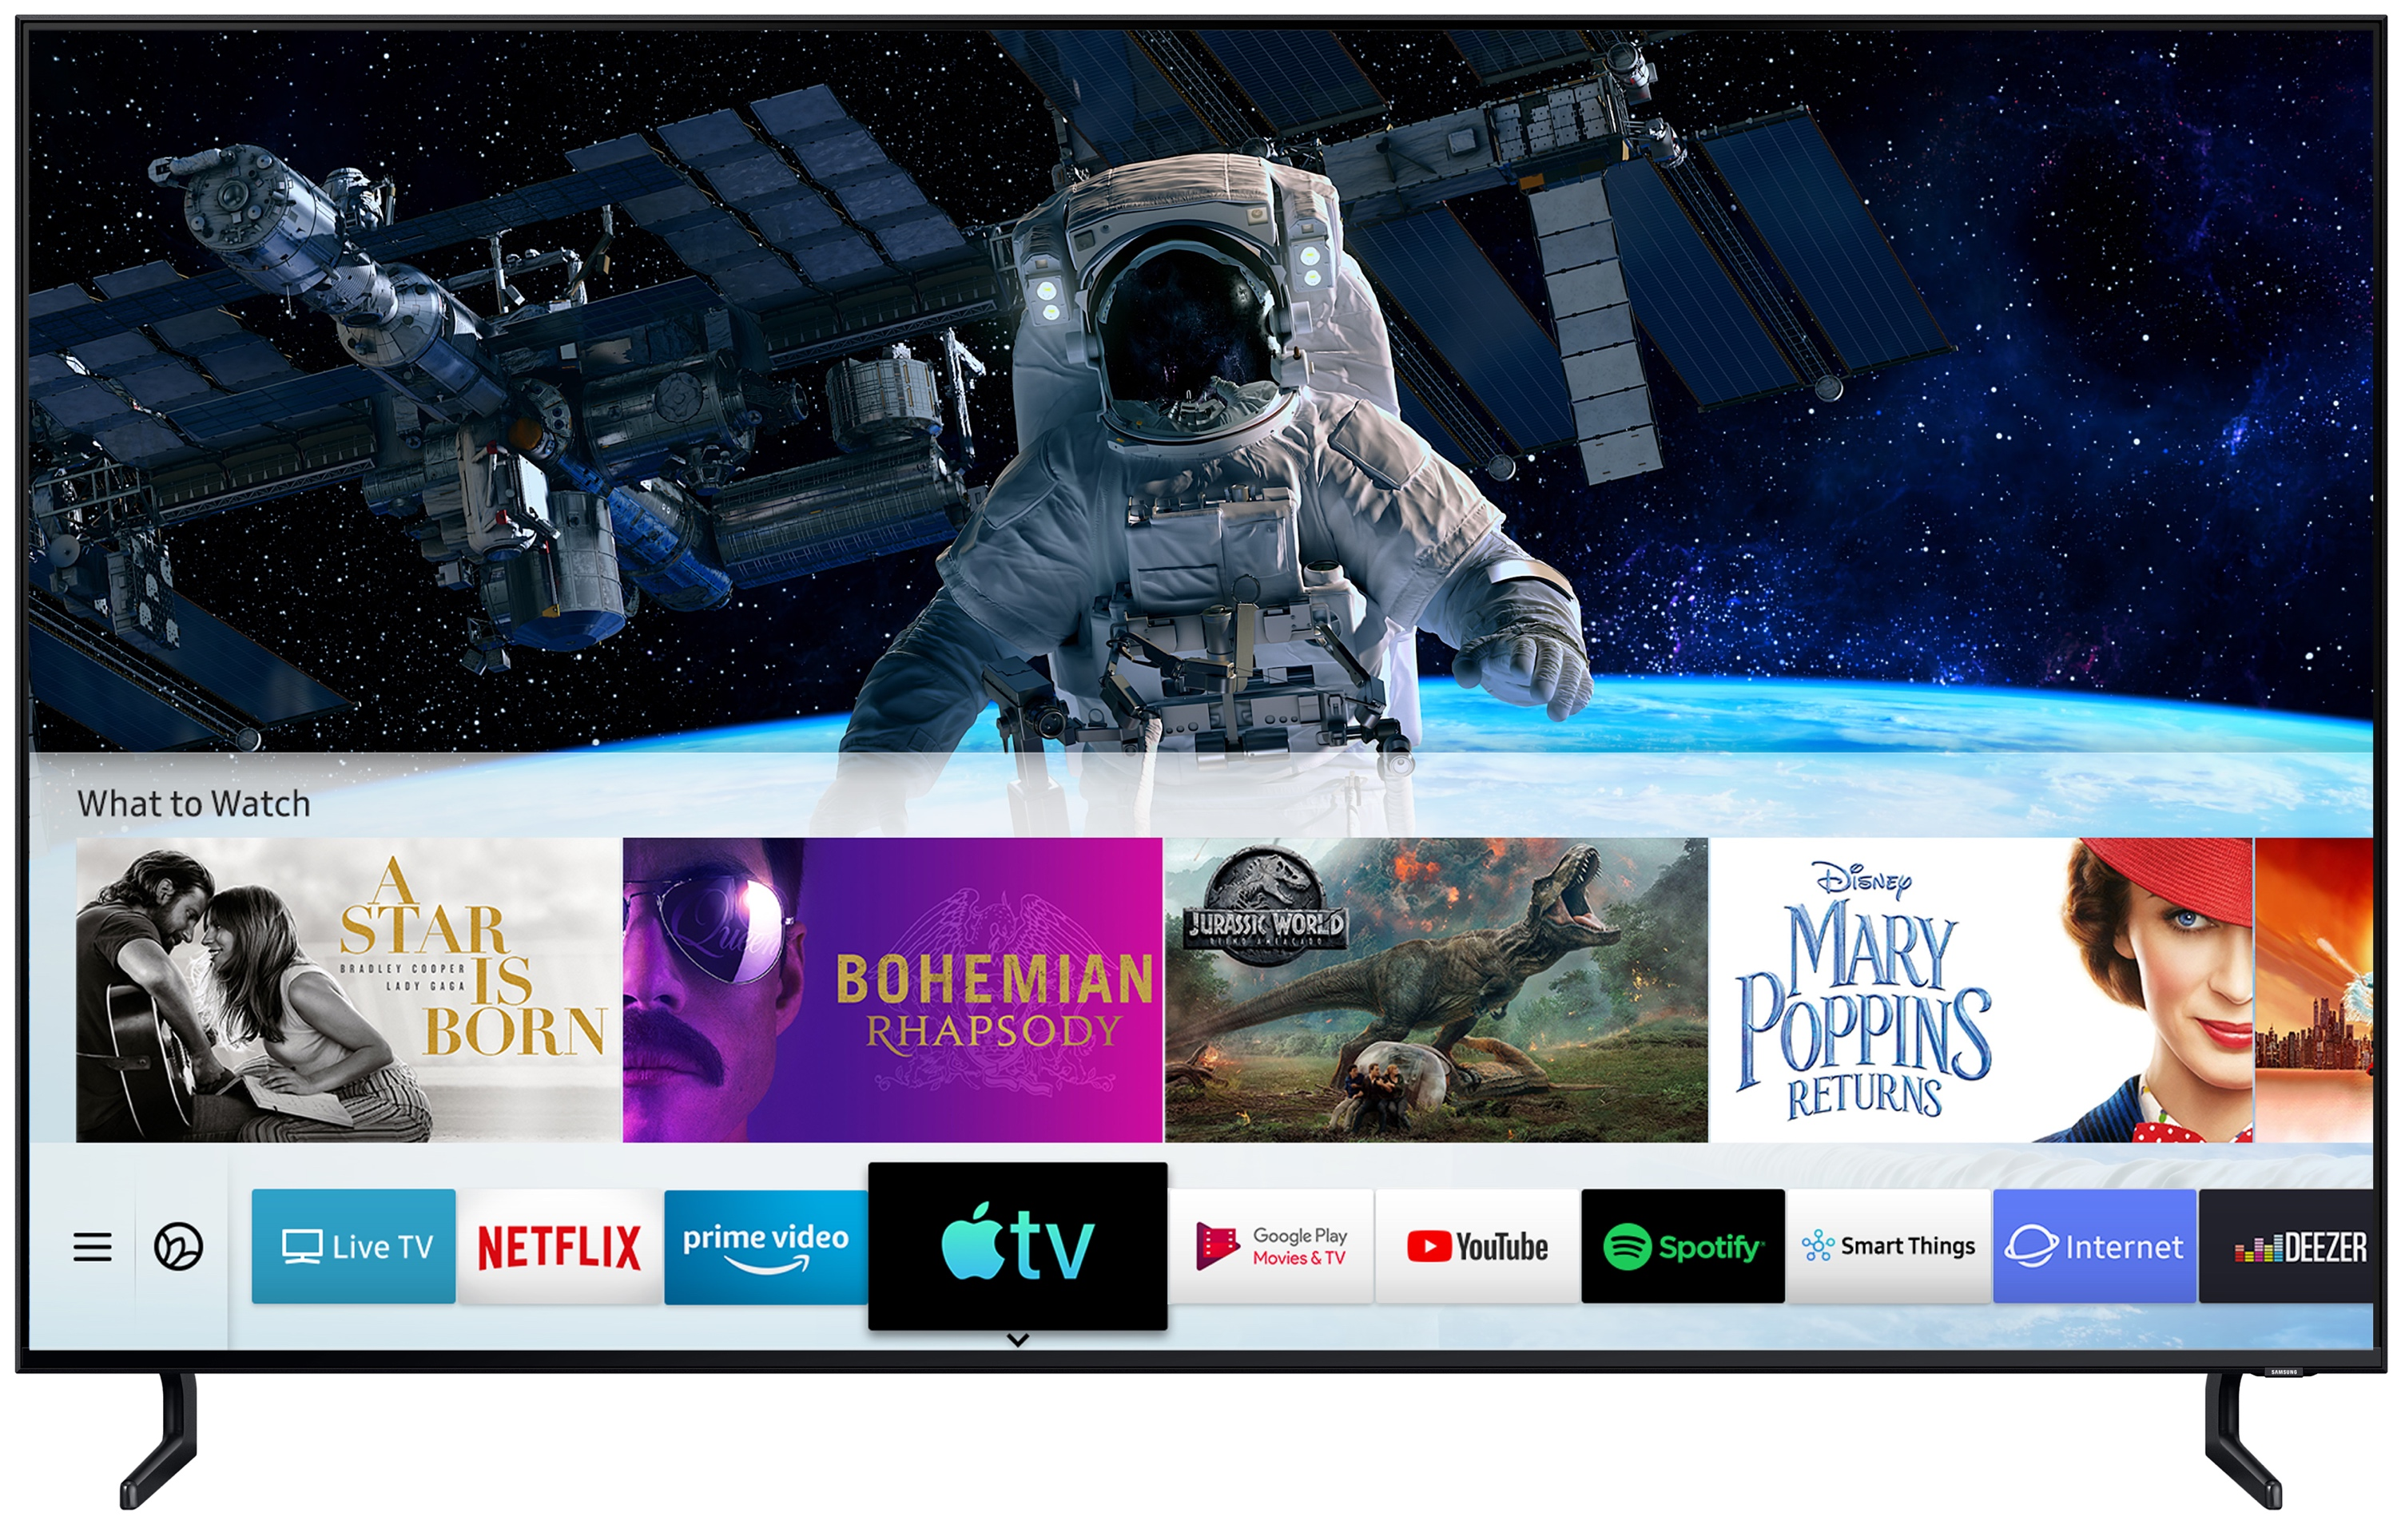 Samsung Apple TV-app AirPlay 2 Smart TV